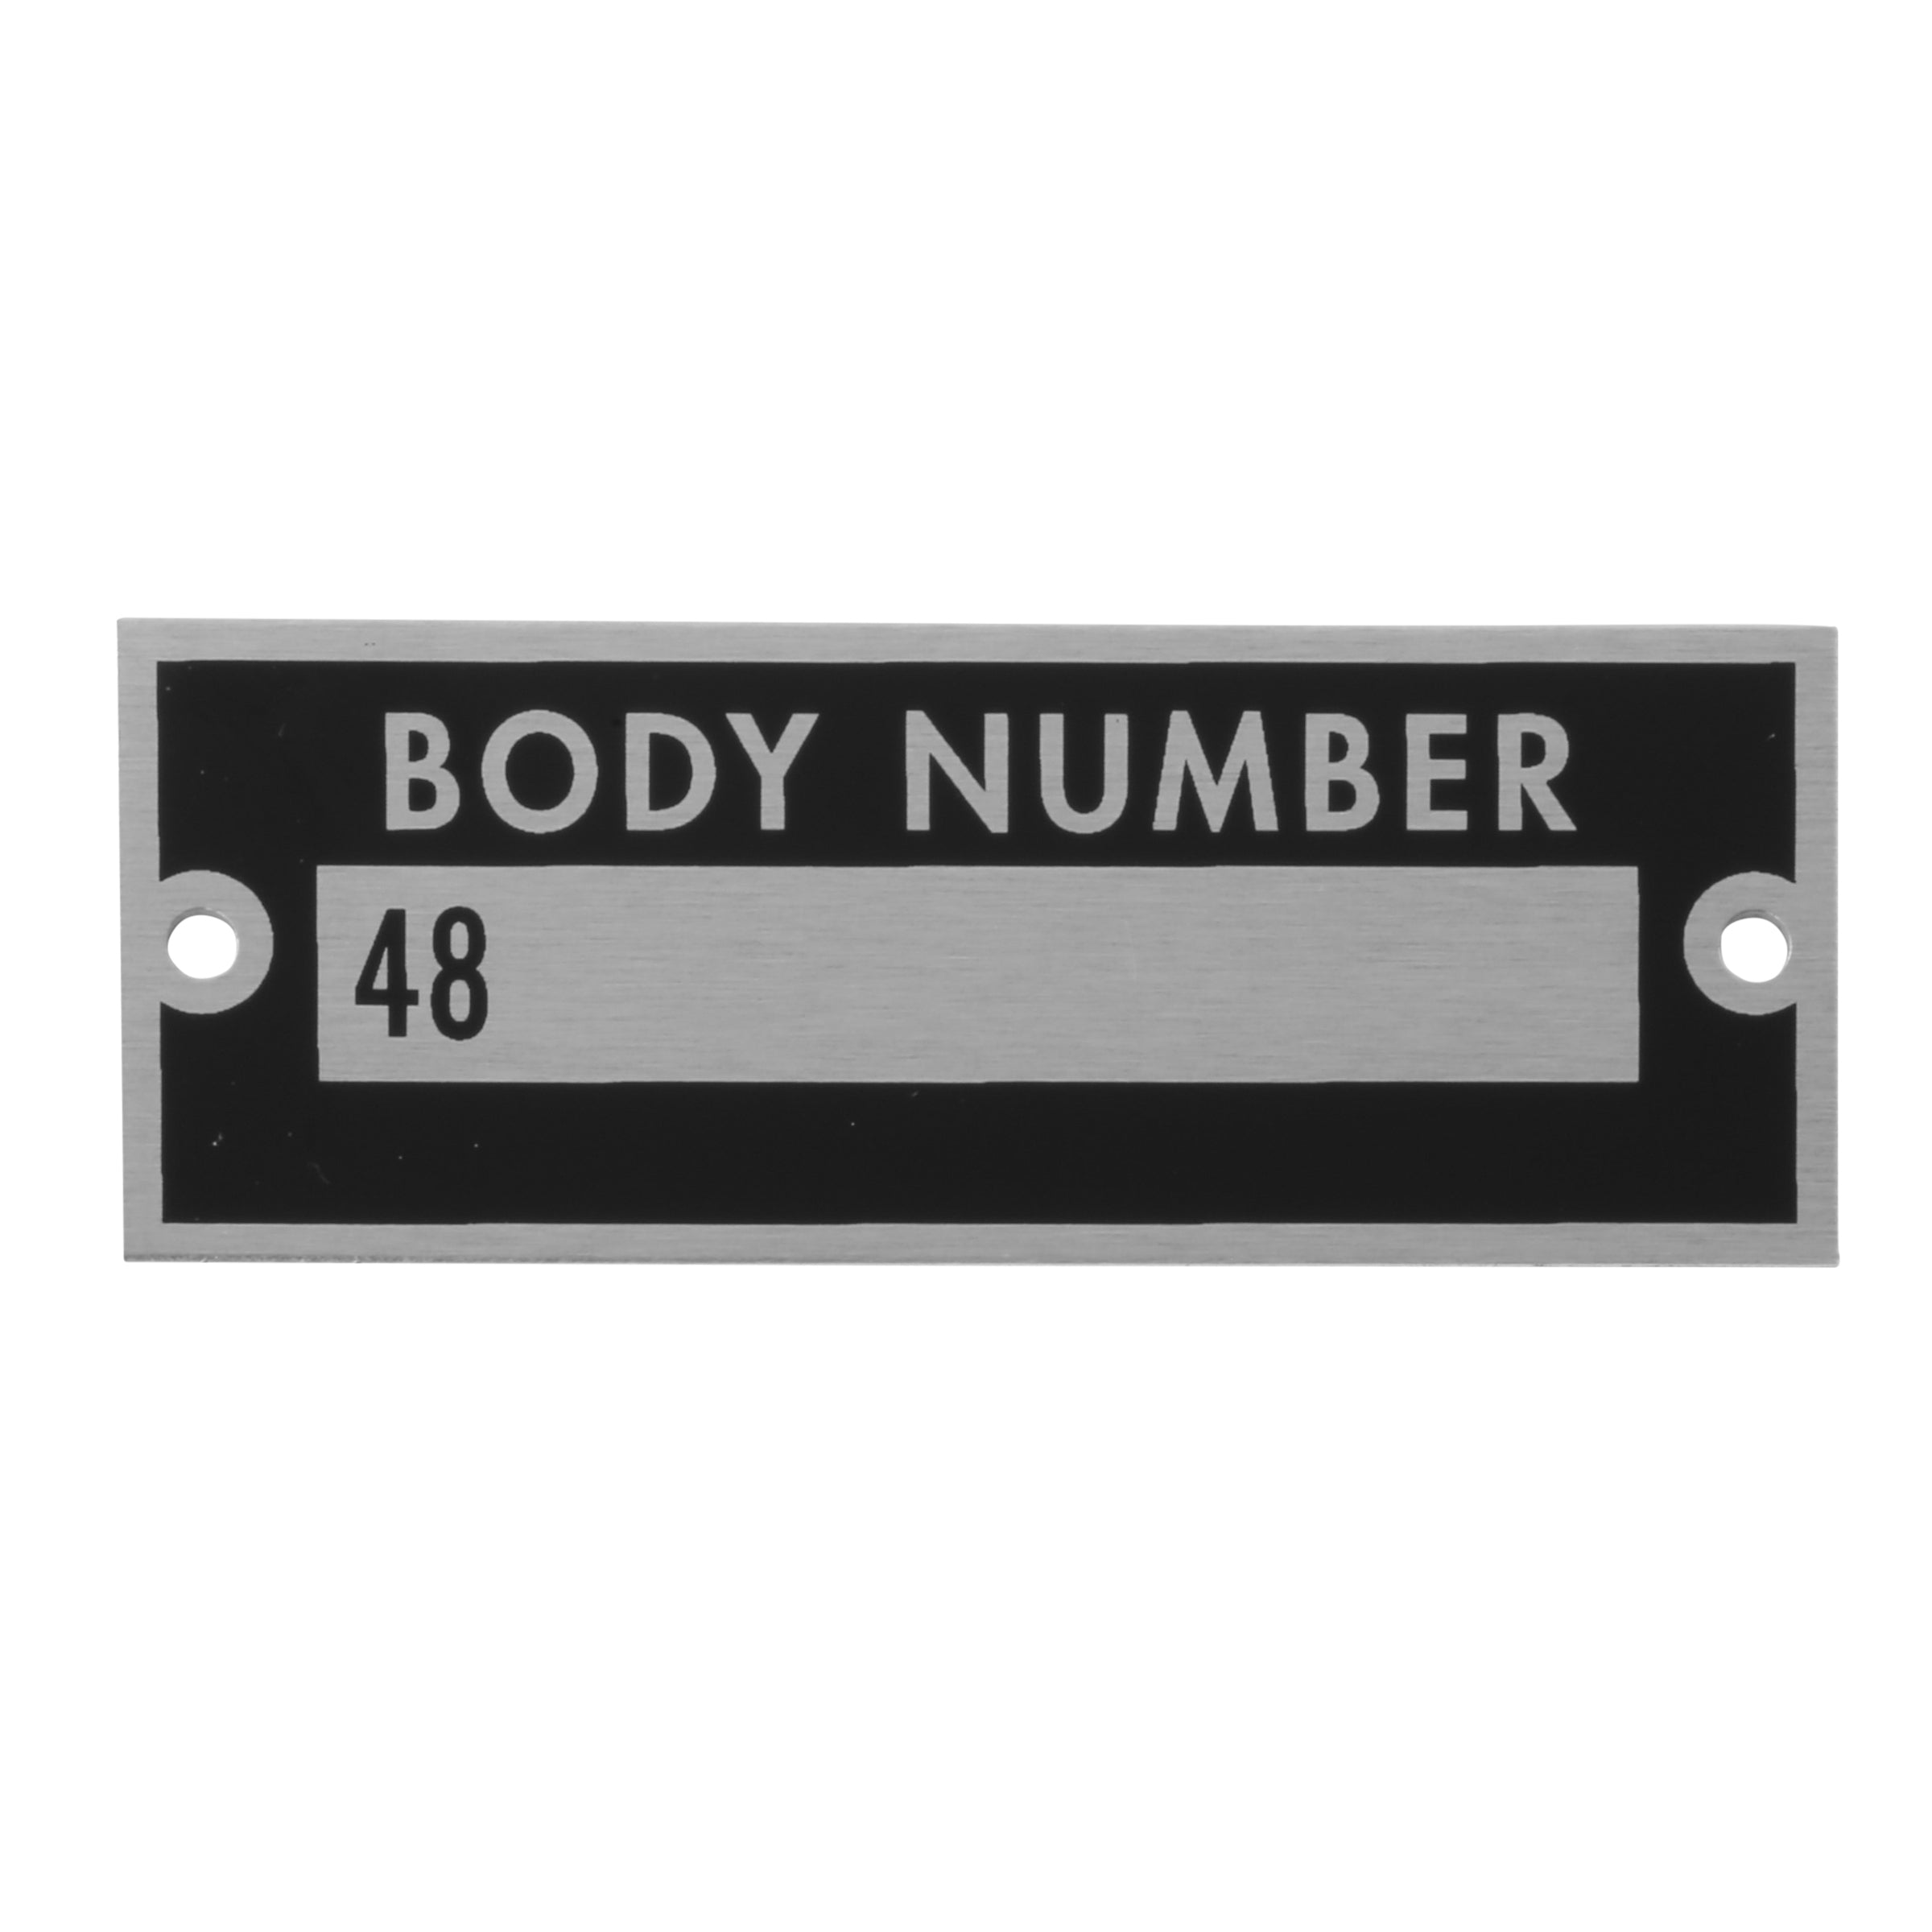 Body Number Plate • 1935 Ford